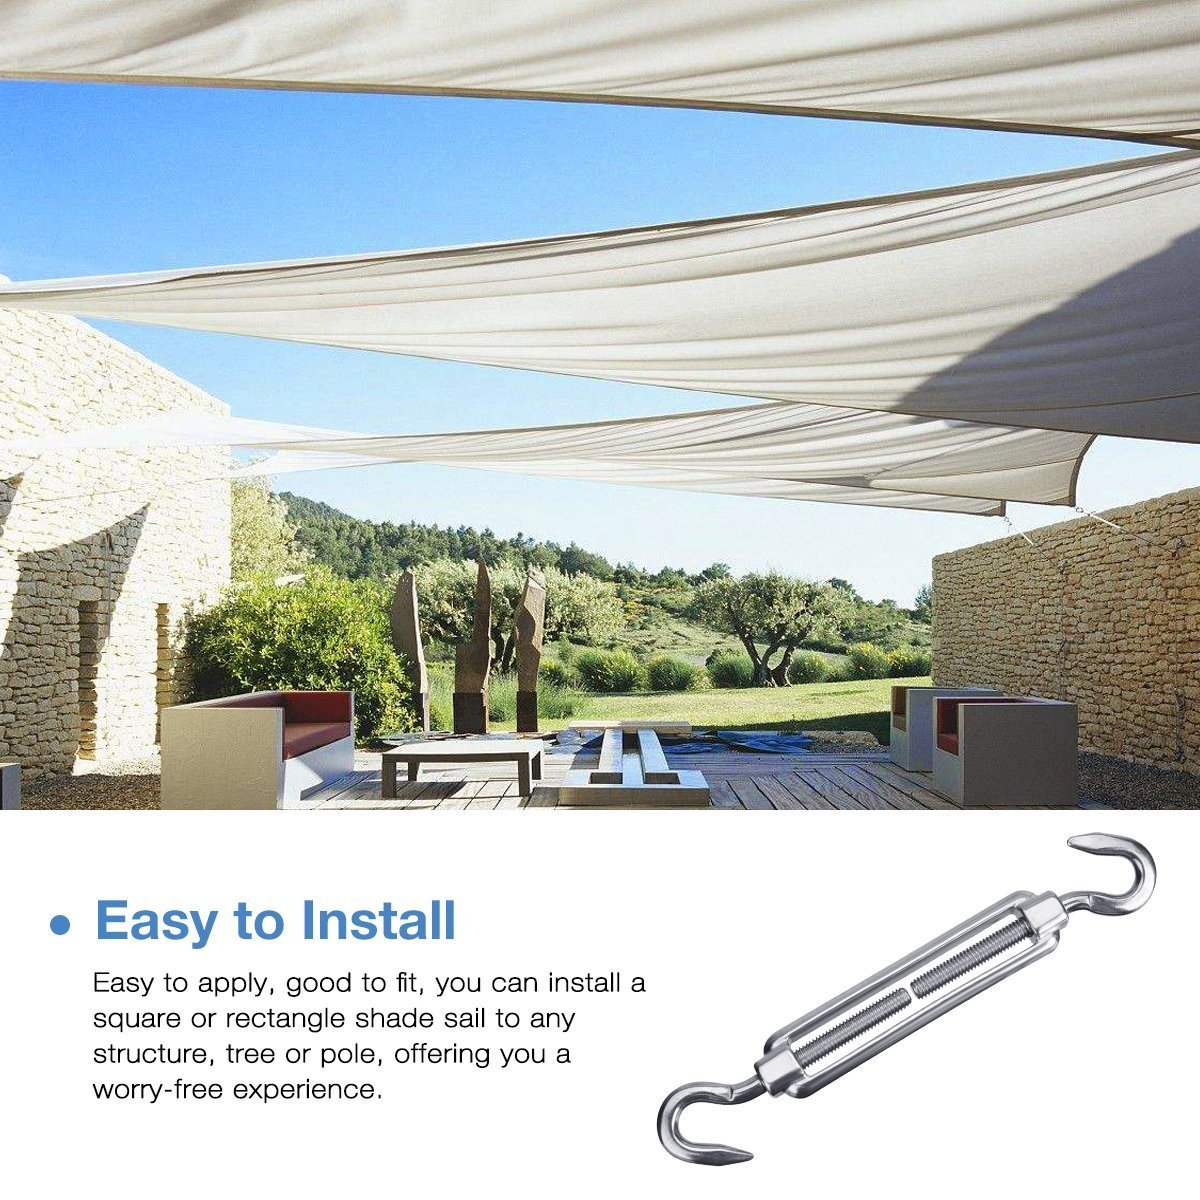 24 Pcs 6 Inches Sun Shade Sail Hardware Kit for Rectangle and Square Sun Shade Sail Installation 304 Stainless Steel for Deck Garden Lawn Patio